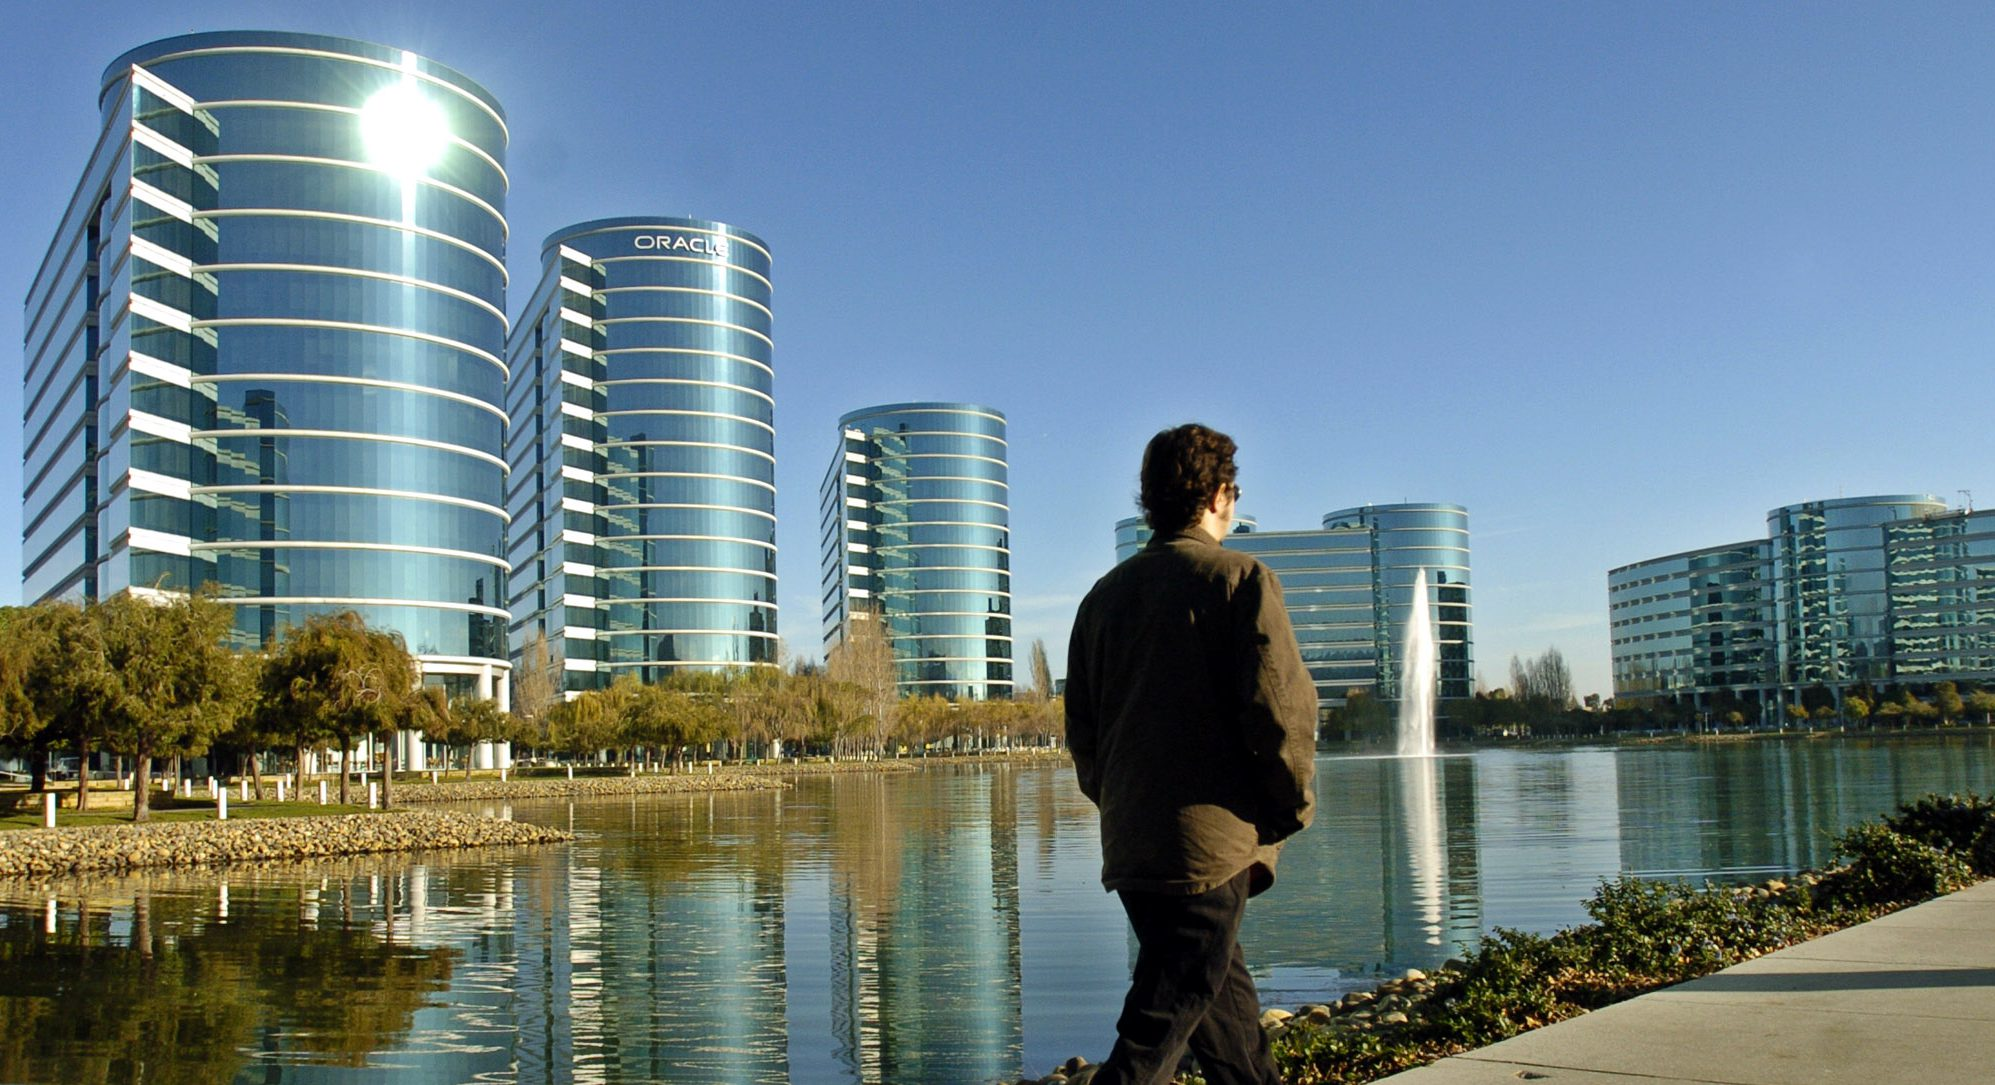 A man walks past the Oracle office in Redwood Shores, Calif., Monday, Dec. 13, 2004.